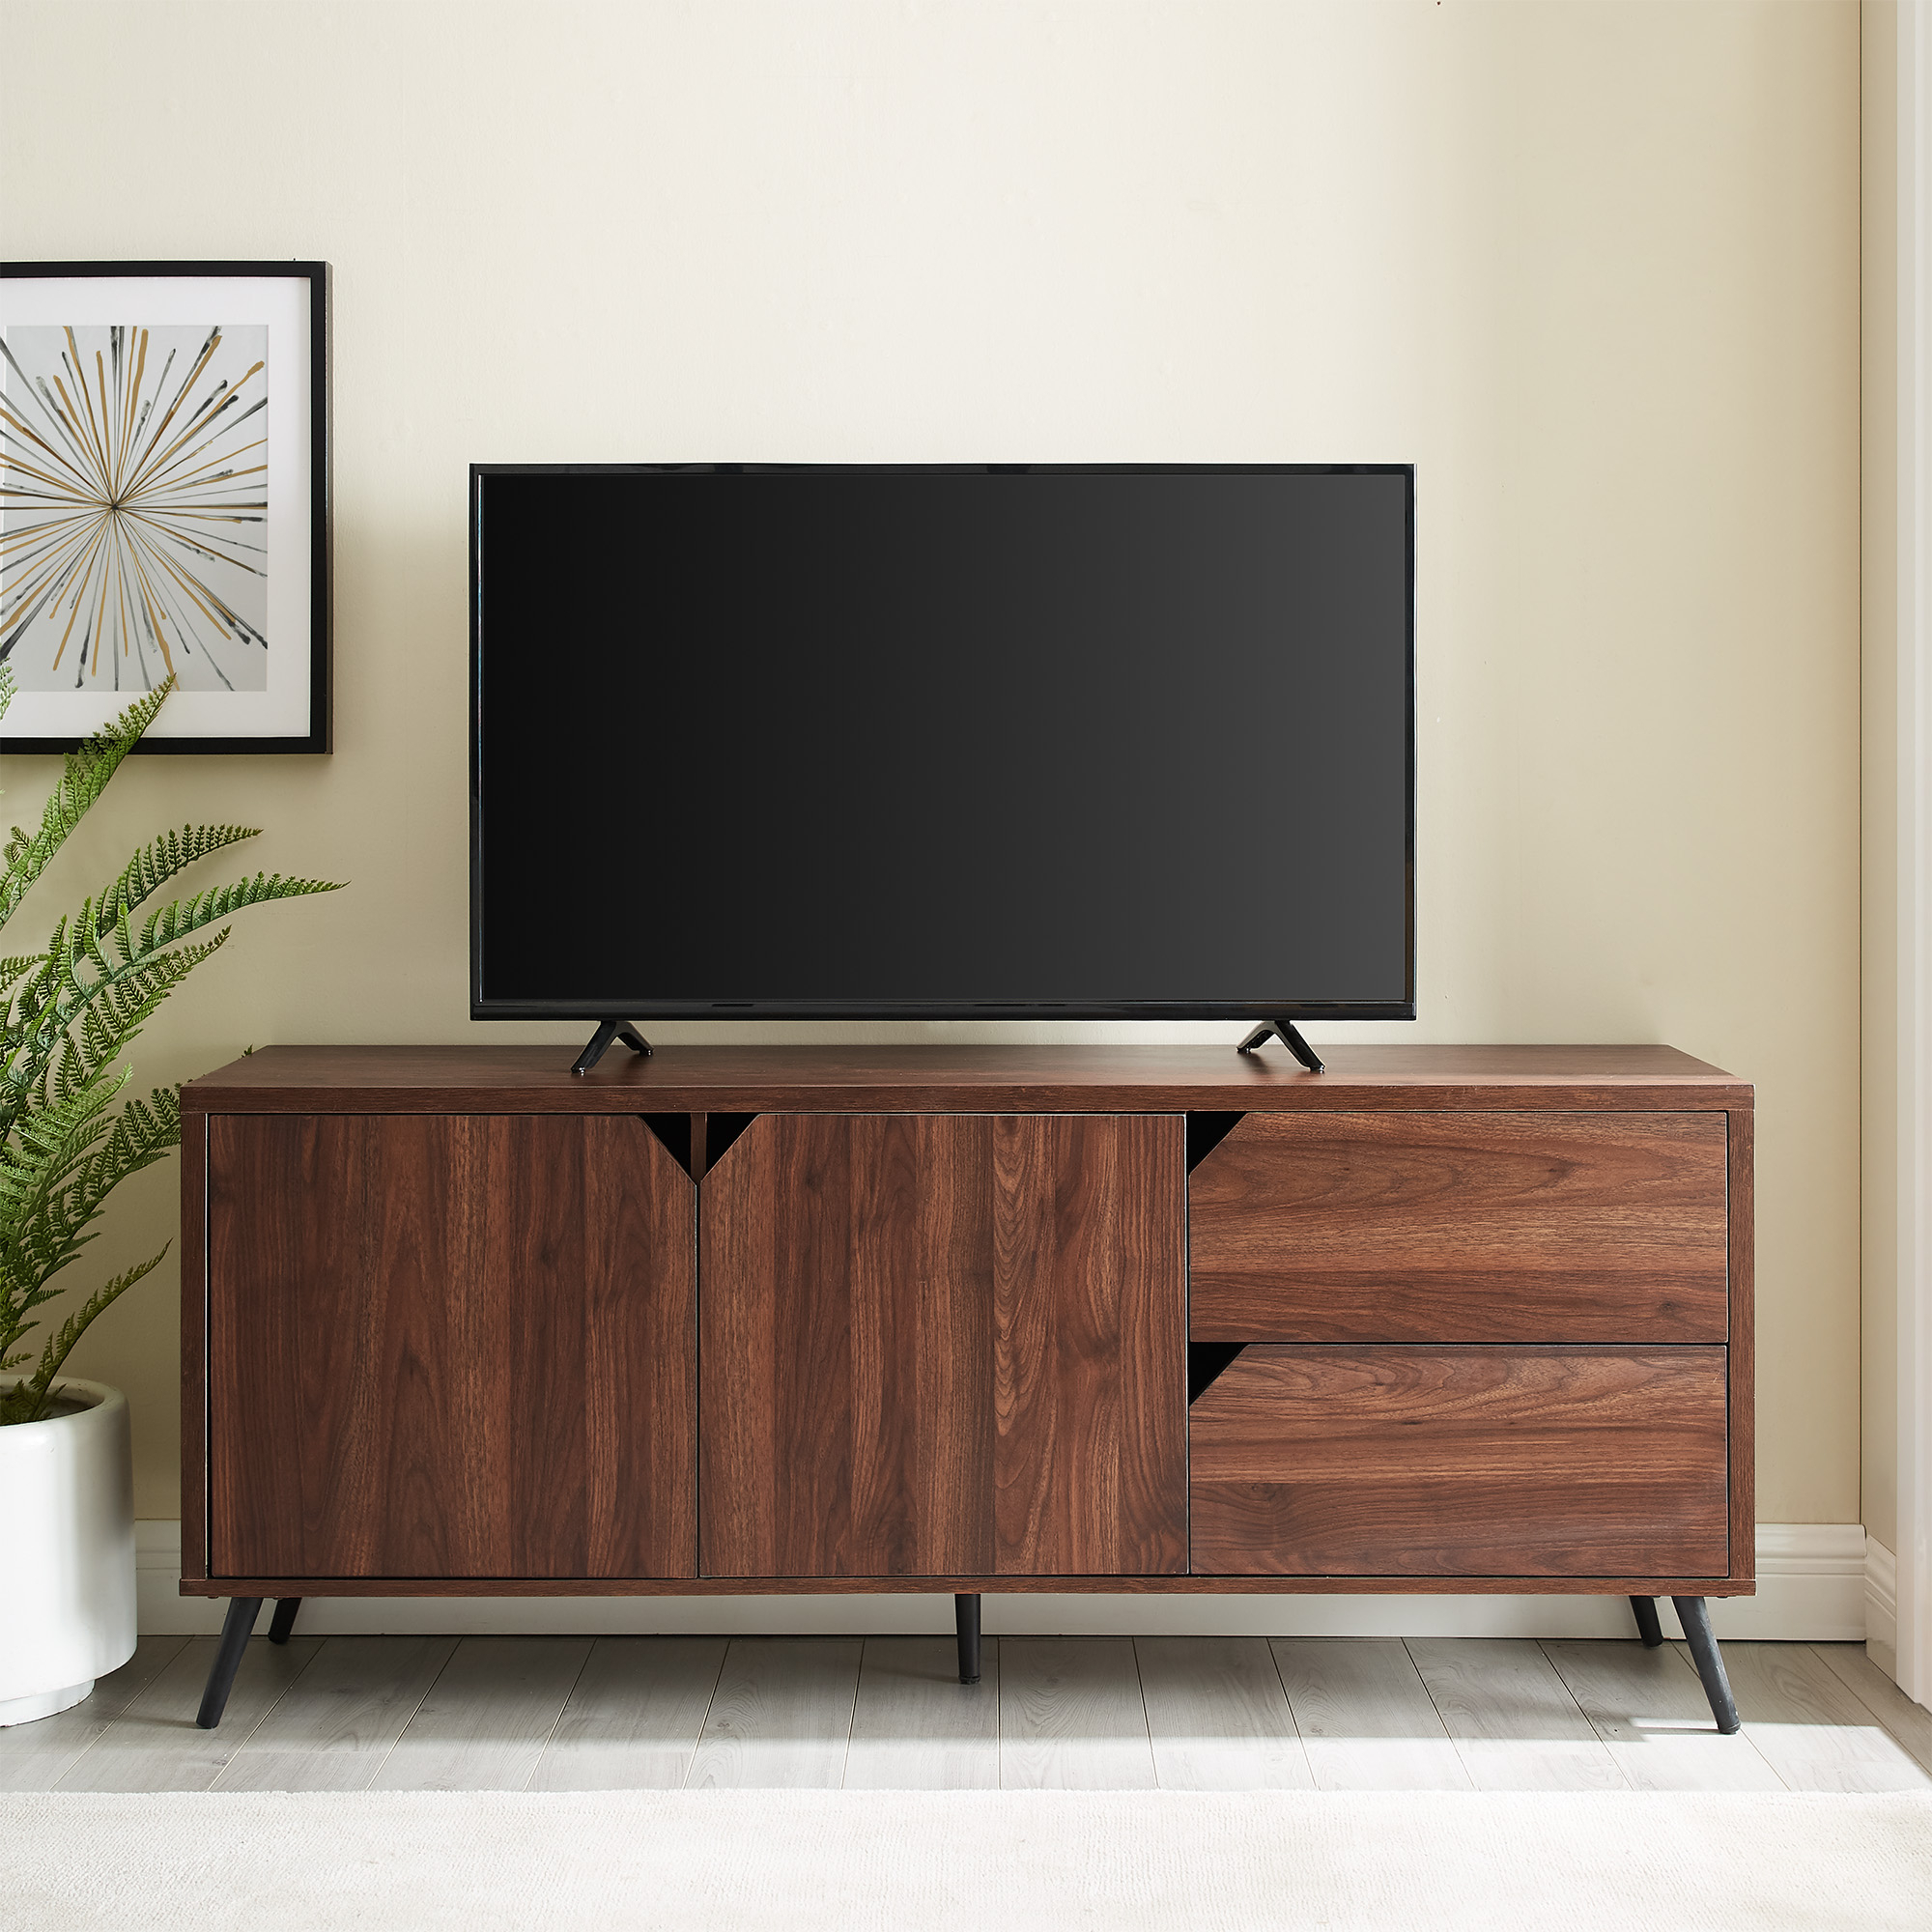 """Manor Park Mid Century Tv Stand For Tvs Up To 65"""", Dark Regarding Tv Mount And Tv Stands For Tvs Up To 65"""" (View 10 of 20)"""